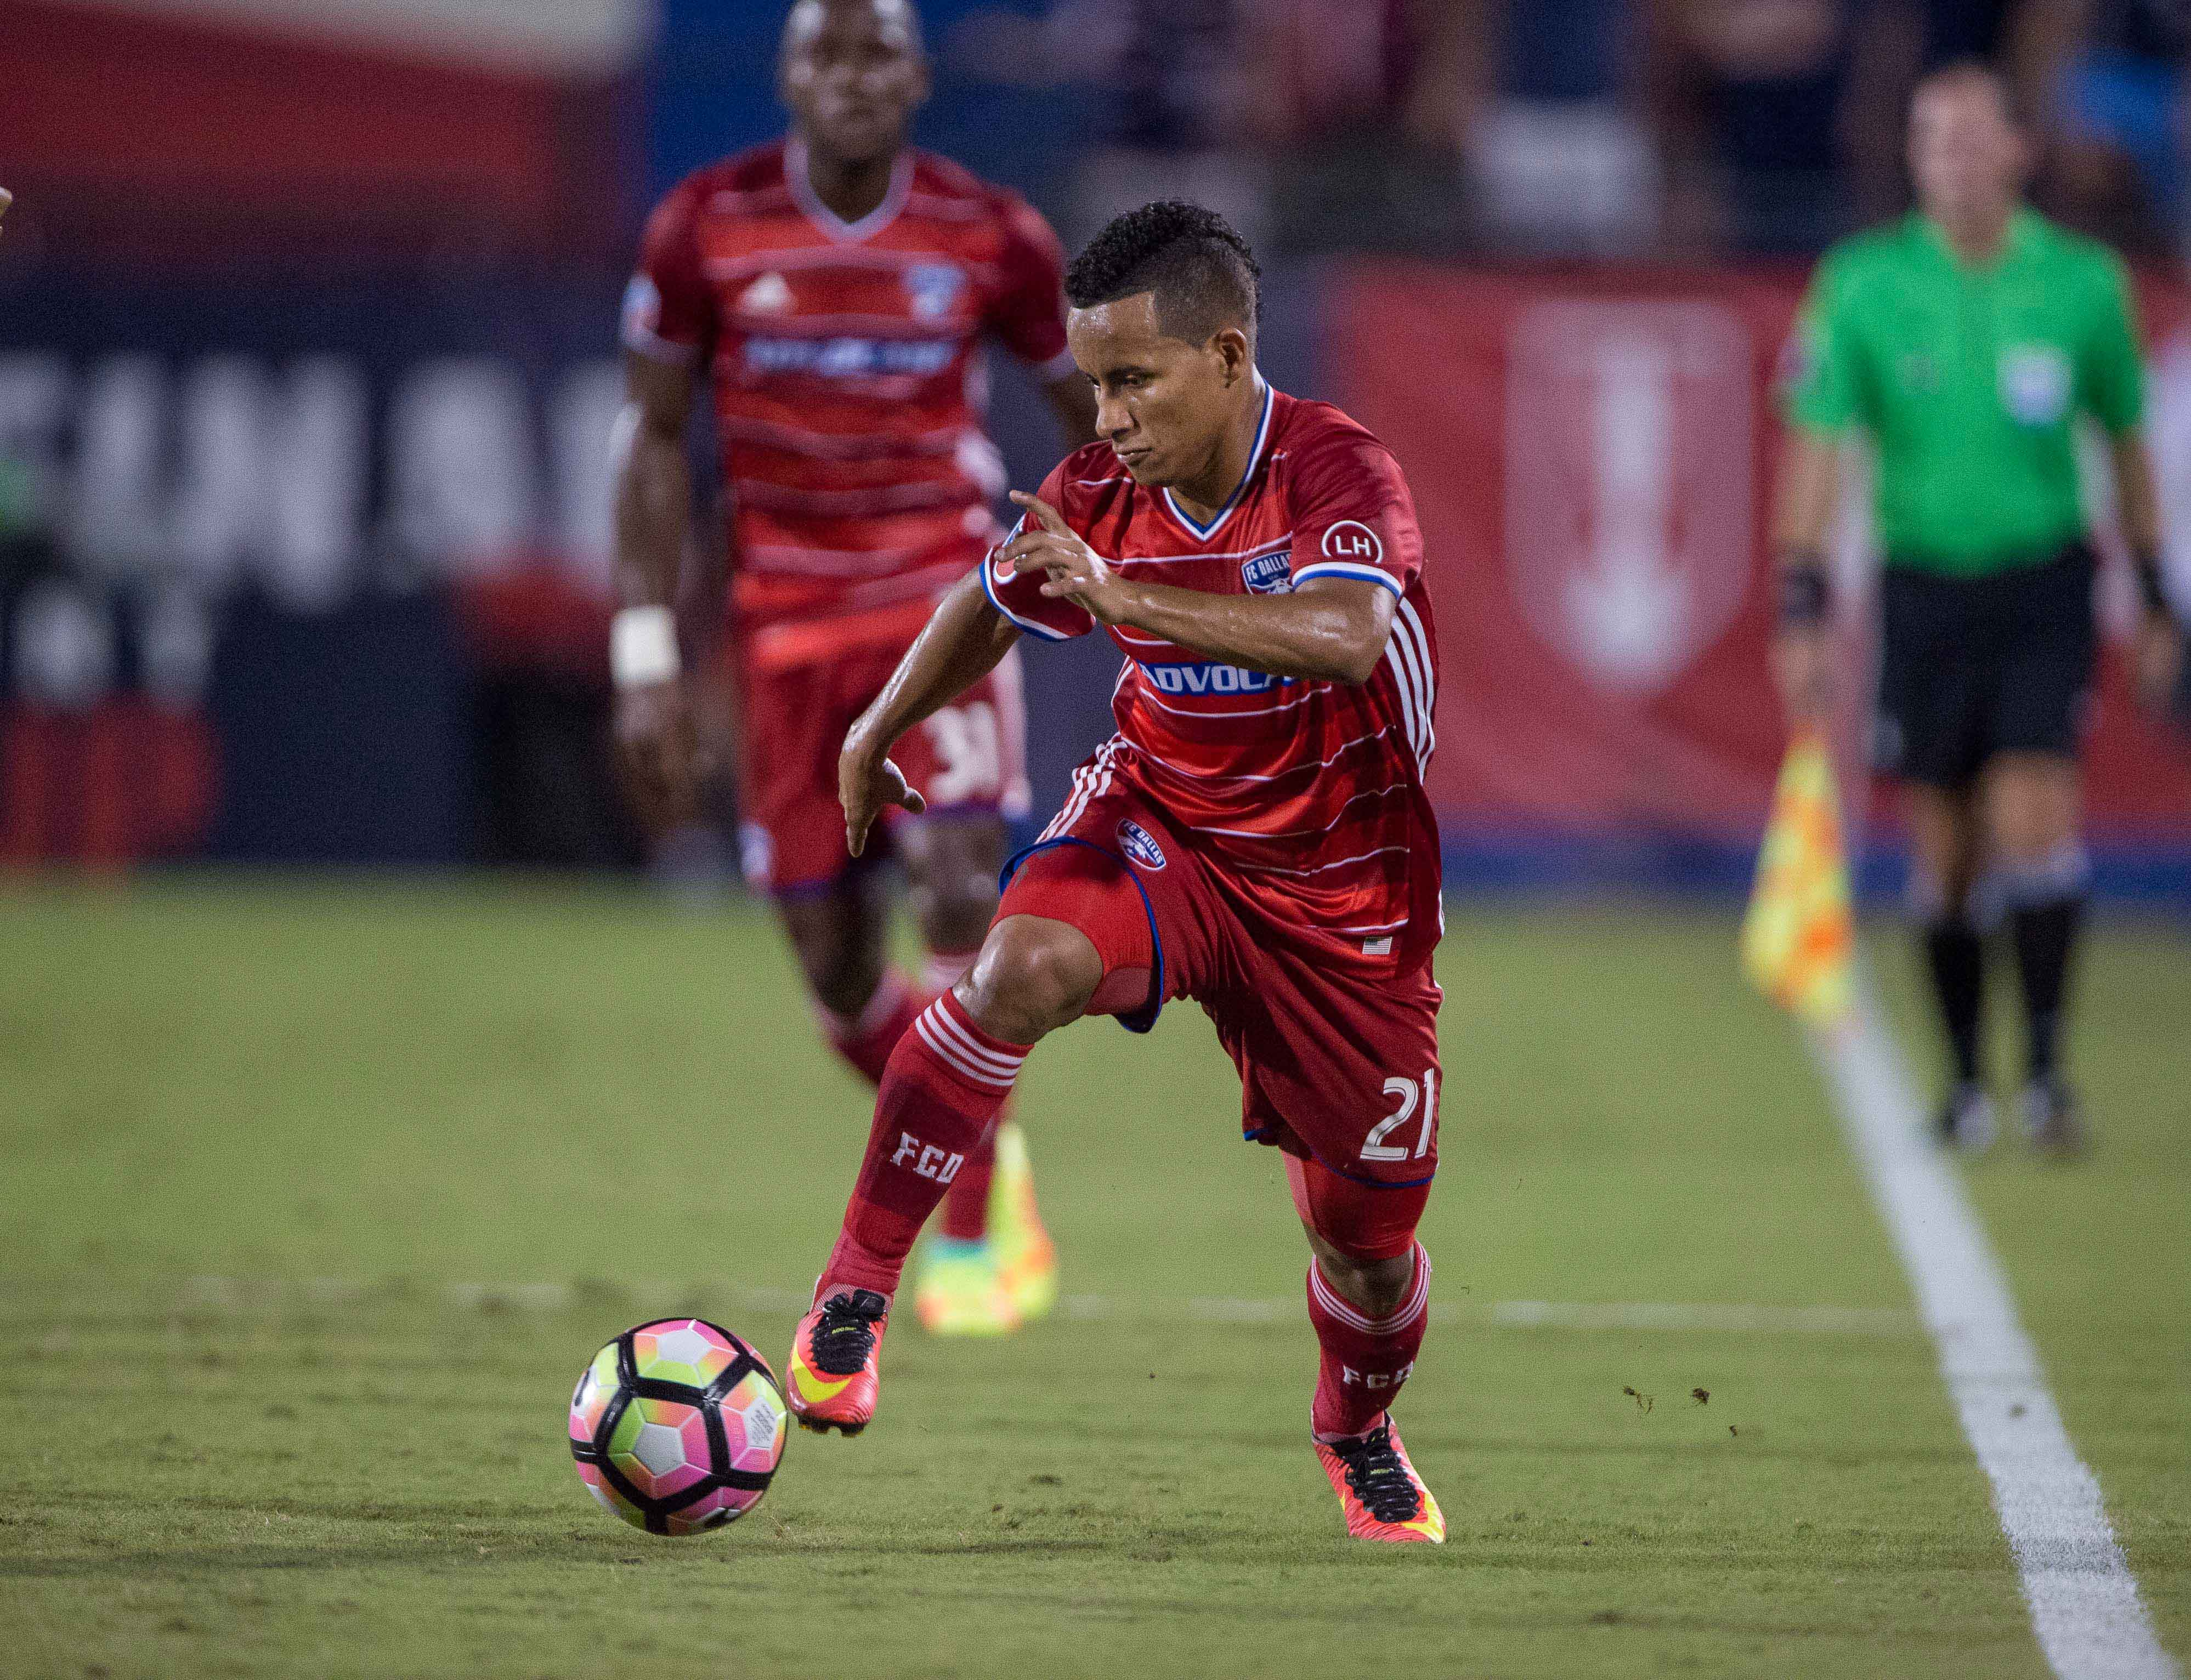 MLS: U.S. Open Cup Final-New England Revolution vs FC Dallas